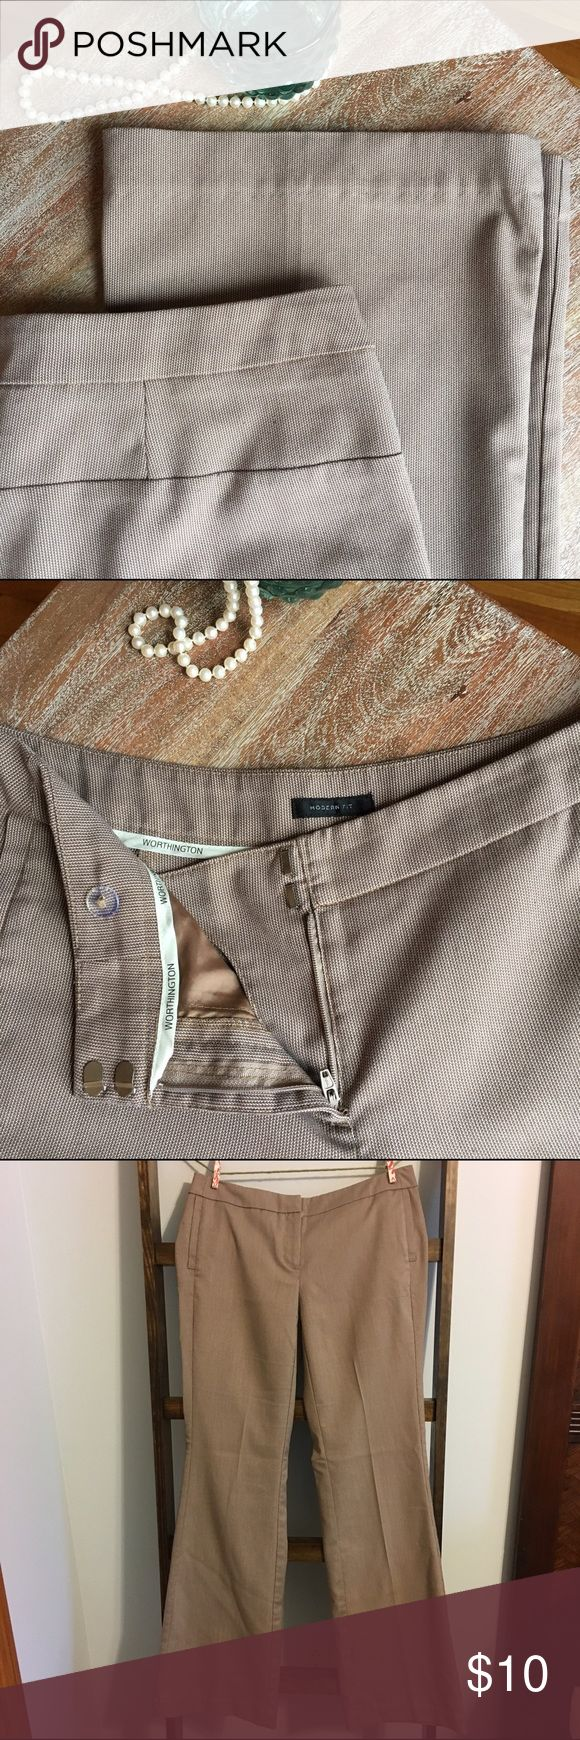 Worthington tan slacks I love these pants but they do not fit me anymore. Worthington brand, size 4. Nailhead pattern, tan and white. Leg openings flare out. Nice pants for the office. Worn a few times but in good condition still. Slight pilling on the rear from sitting in an office chair but not very noticeable (last photo). Worthington Pants Trousers